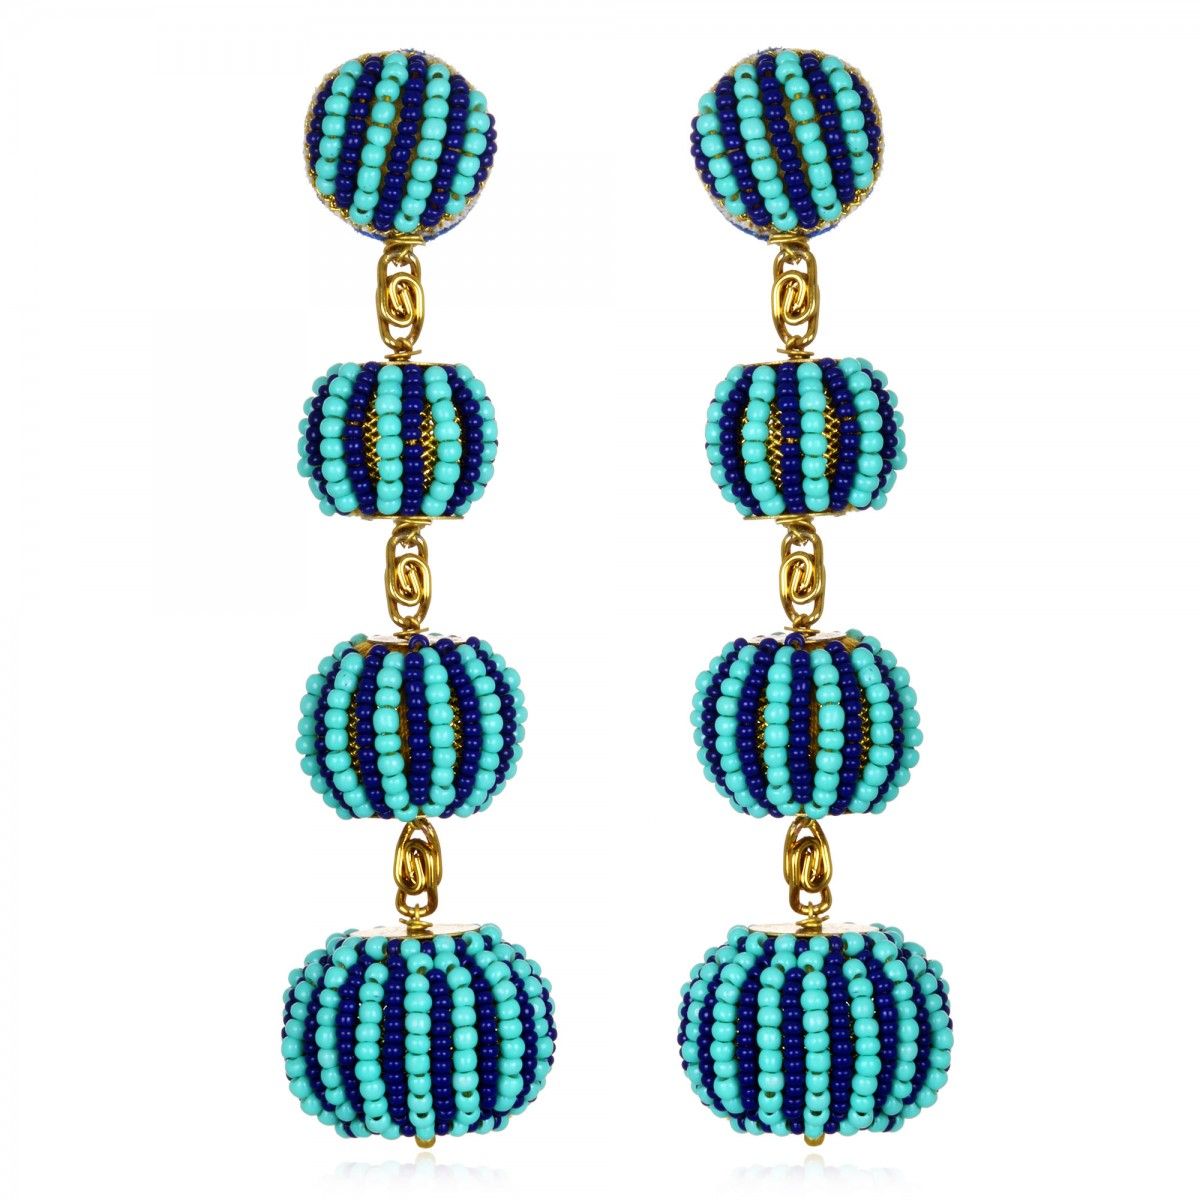 Navy Turquoise Beaded Earrings by SUZANNA DAI